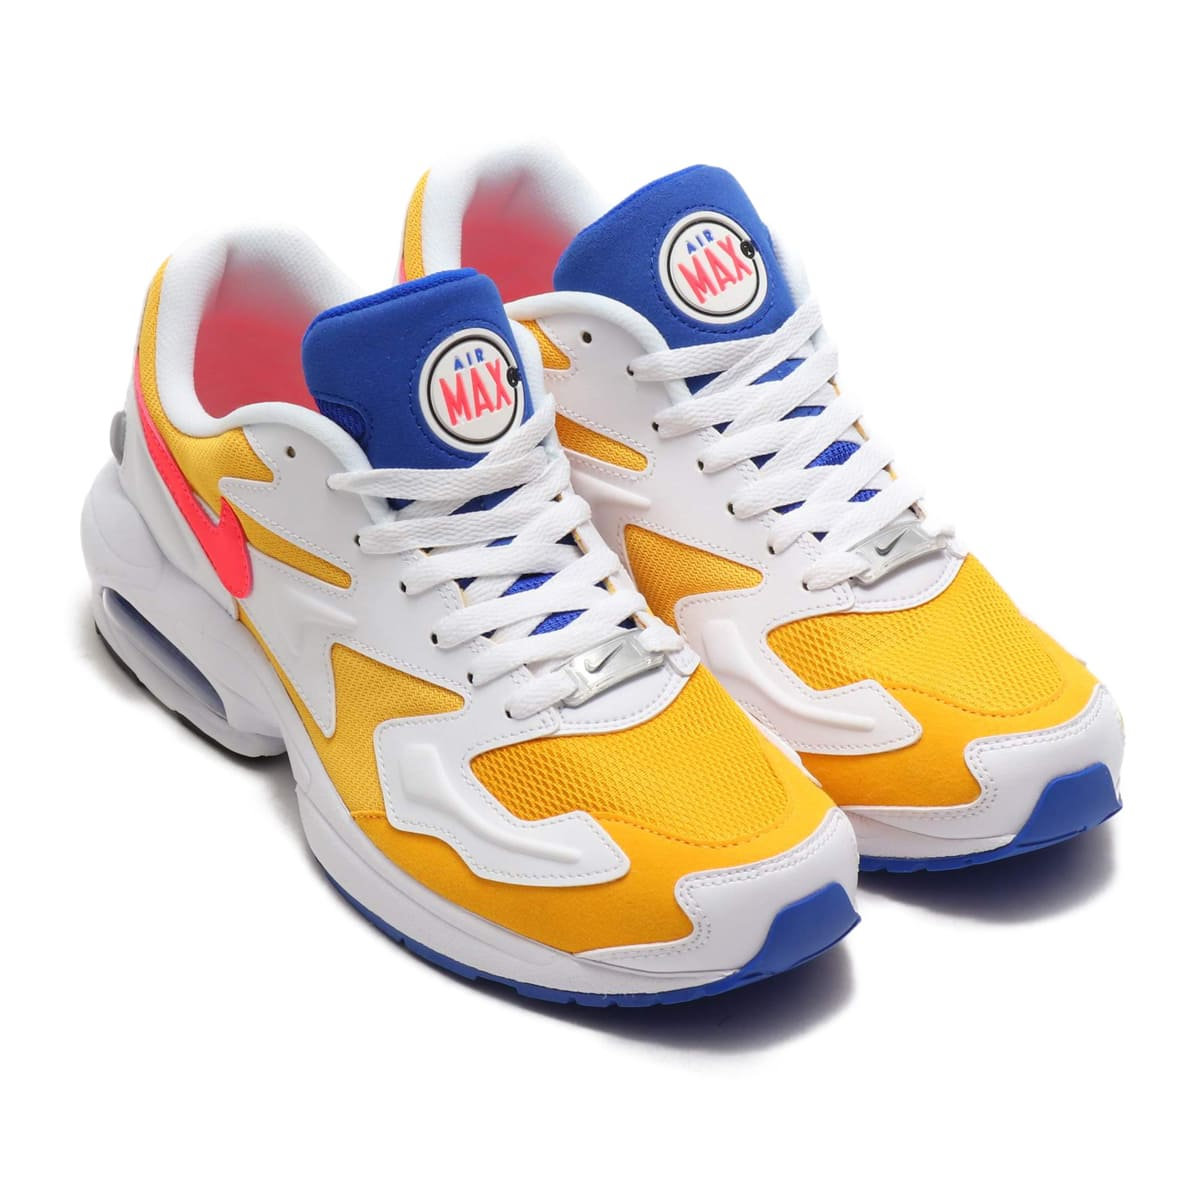 1311f0b063 NIKE AIR MAX2 LIGHT UNIVERSITY GOLD/FLASH CRIMSON-RACER BLUE 19SP-I